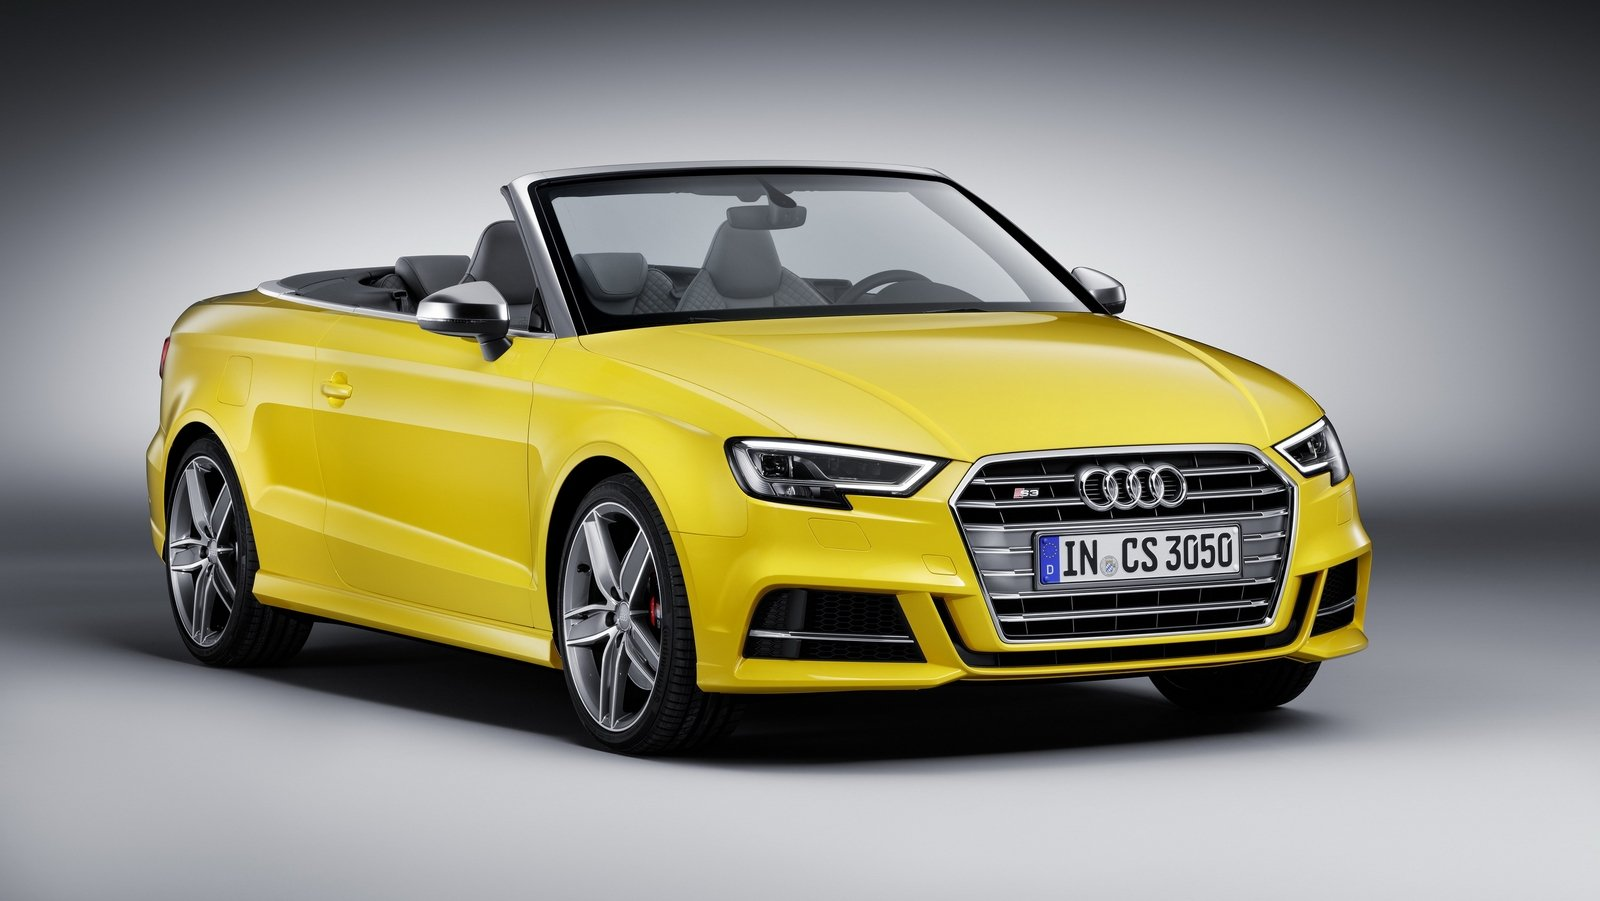 2017 audi s3 cabriolet picture 671967 car review top speed. Black Bedroom Furniture Sets. Home Design Ideas